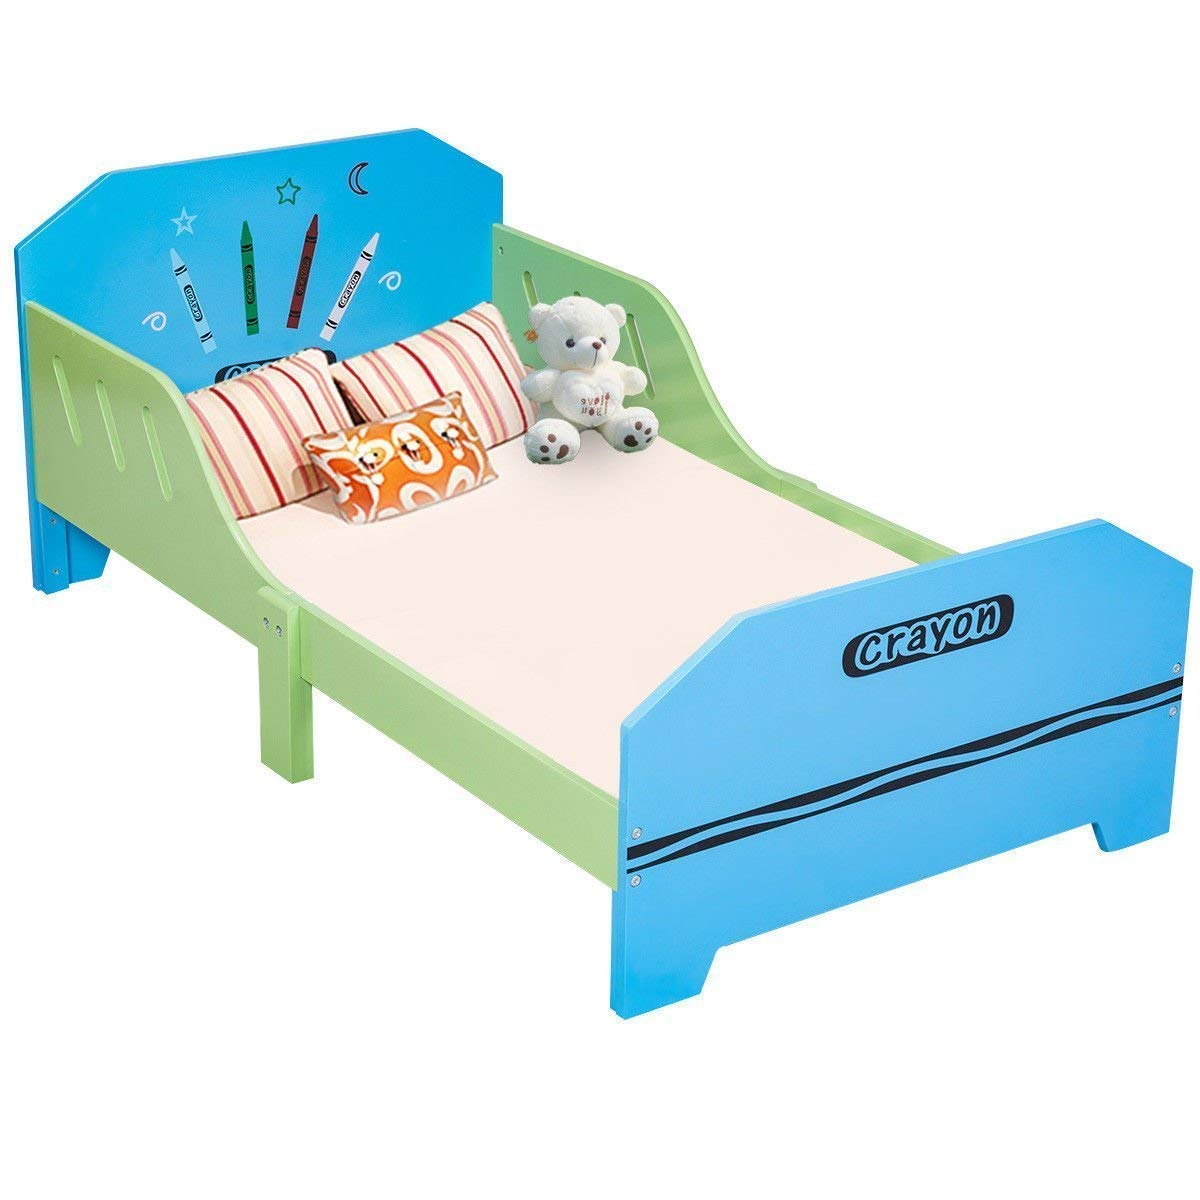 Costzon Toddler Bed, Crayon Themed Toddler Bed Frame w/Safety Rail Fence by Costzon